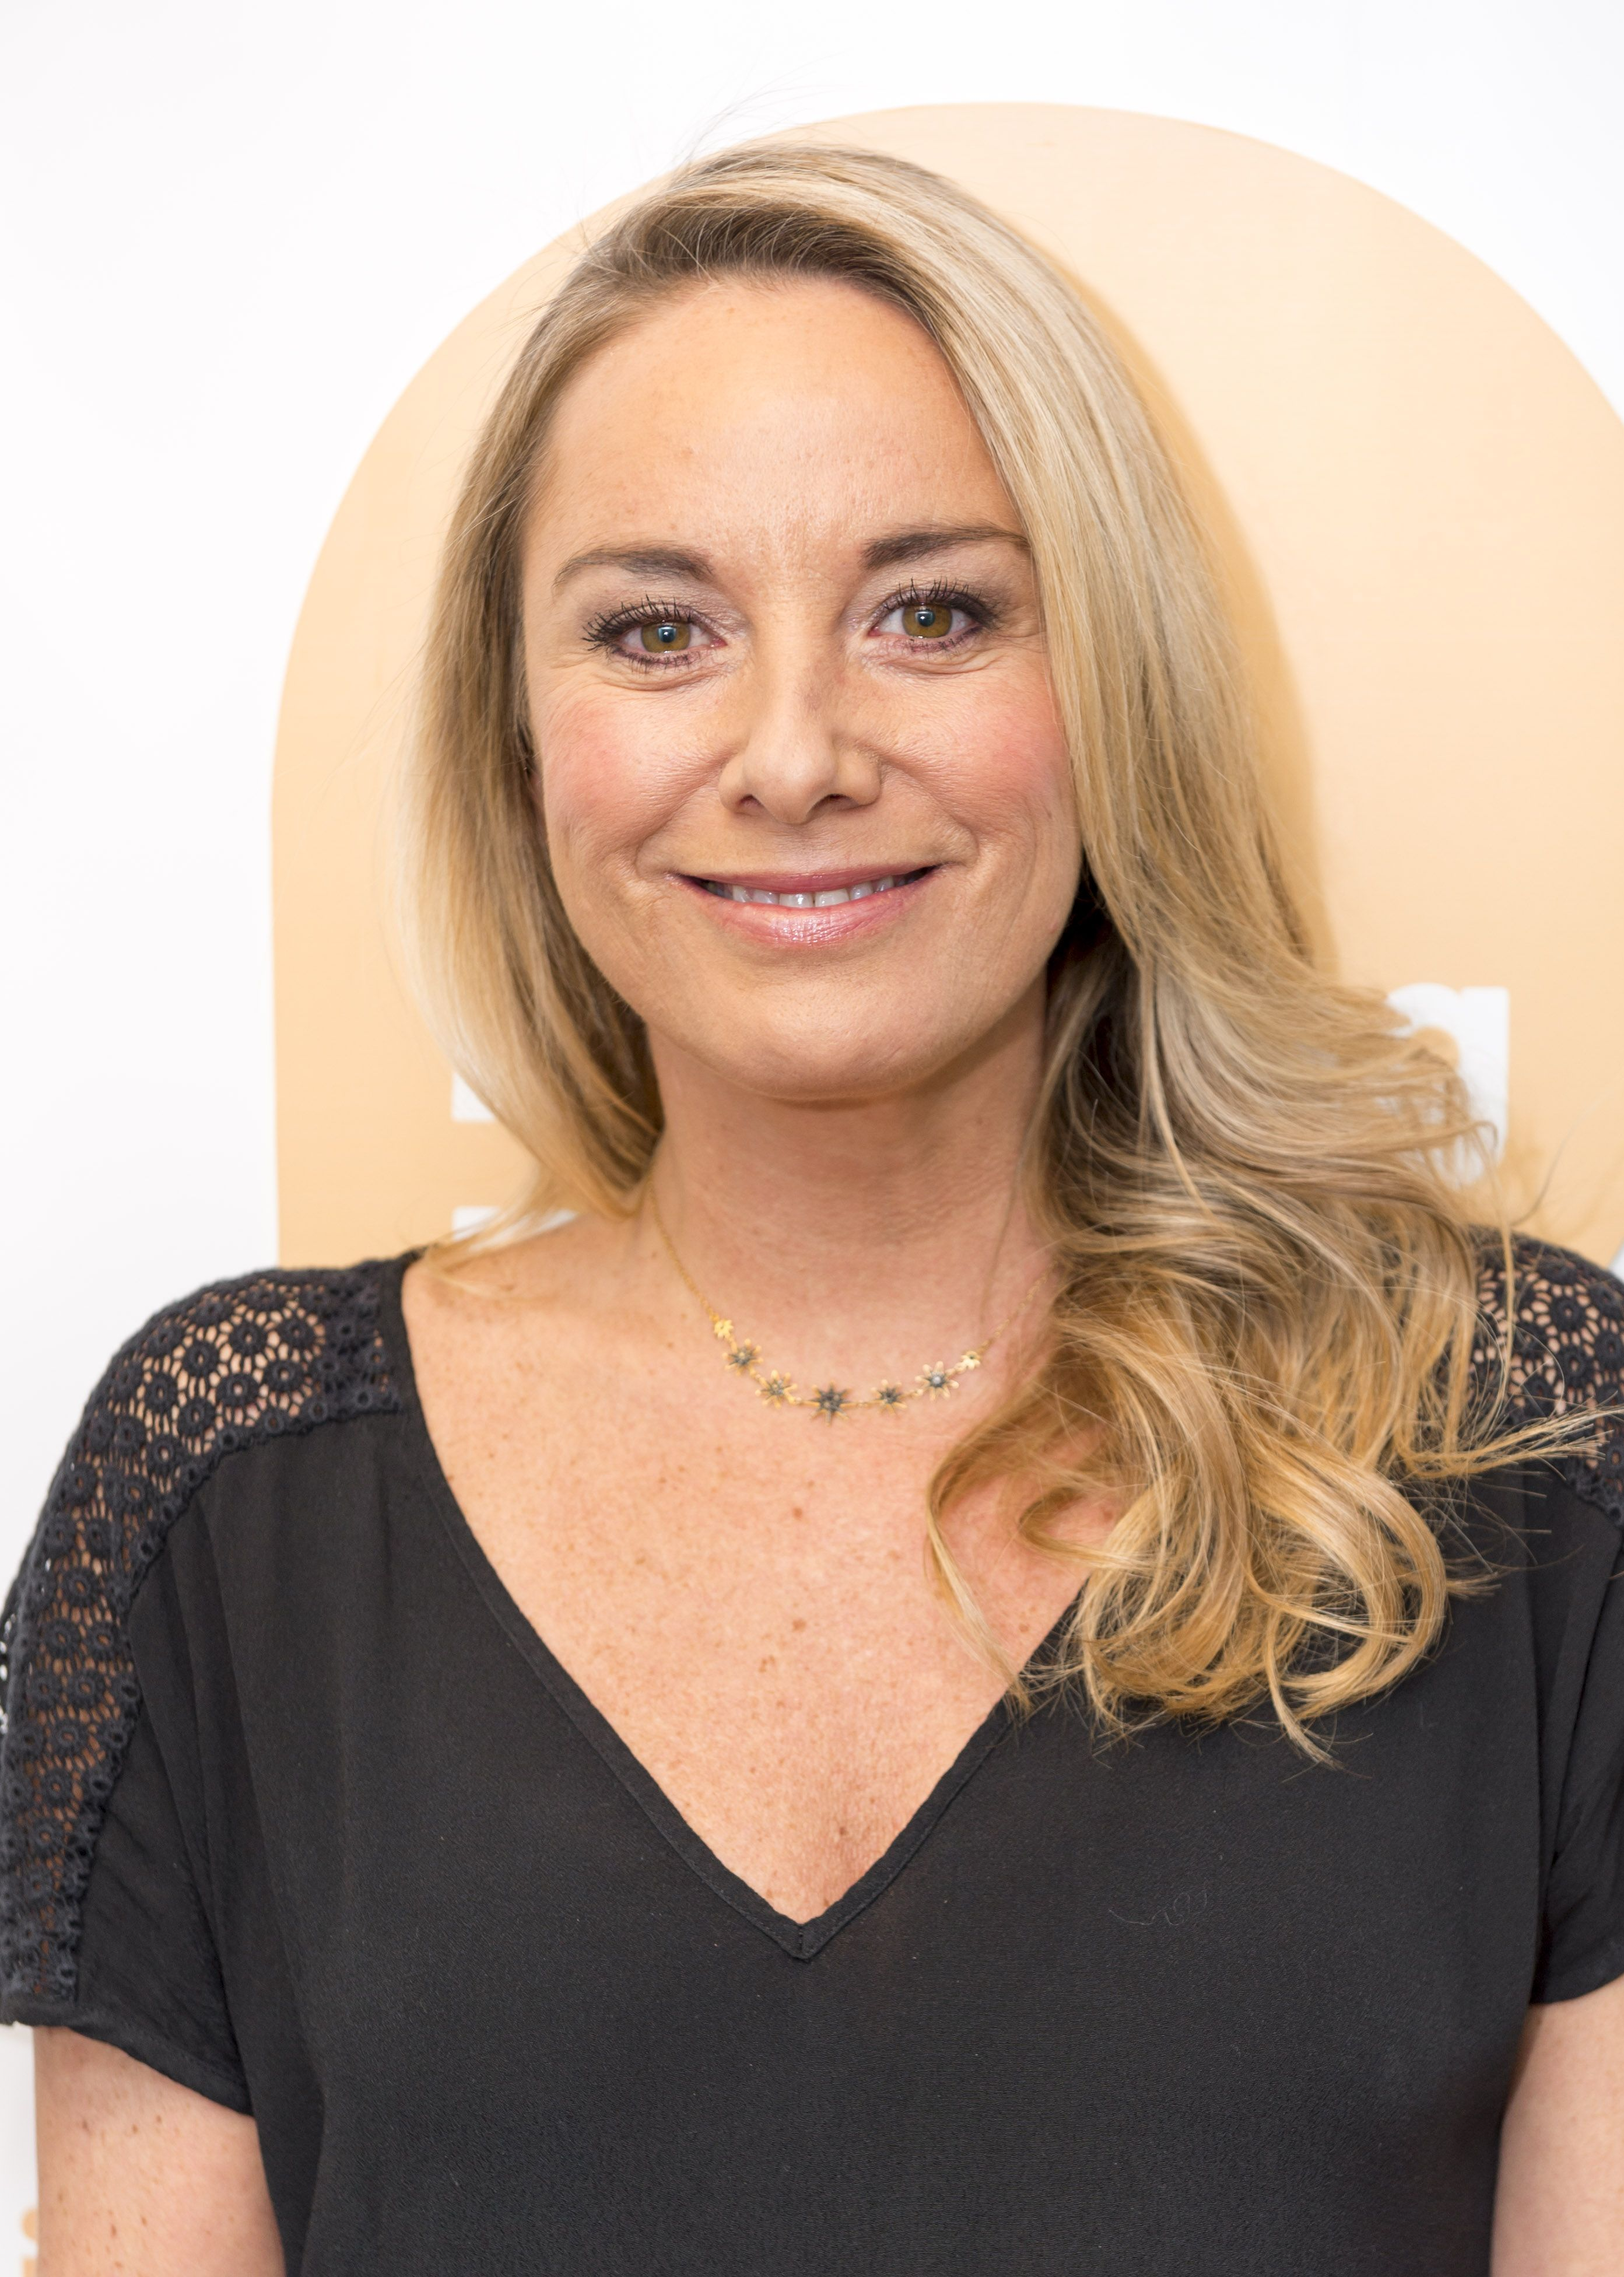 tamzin outhwaite - photo #21